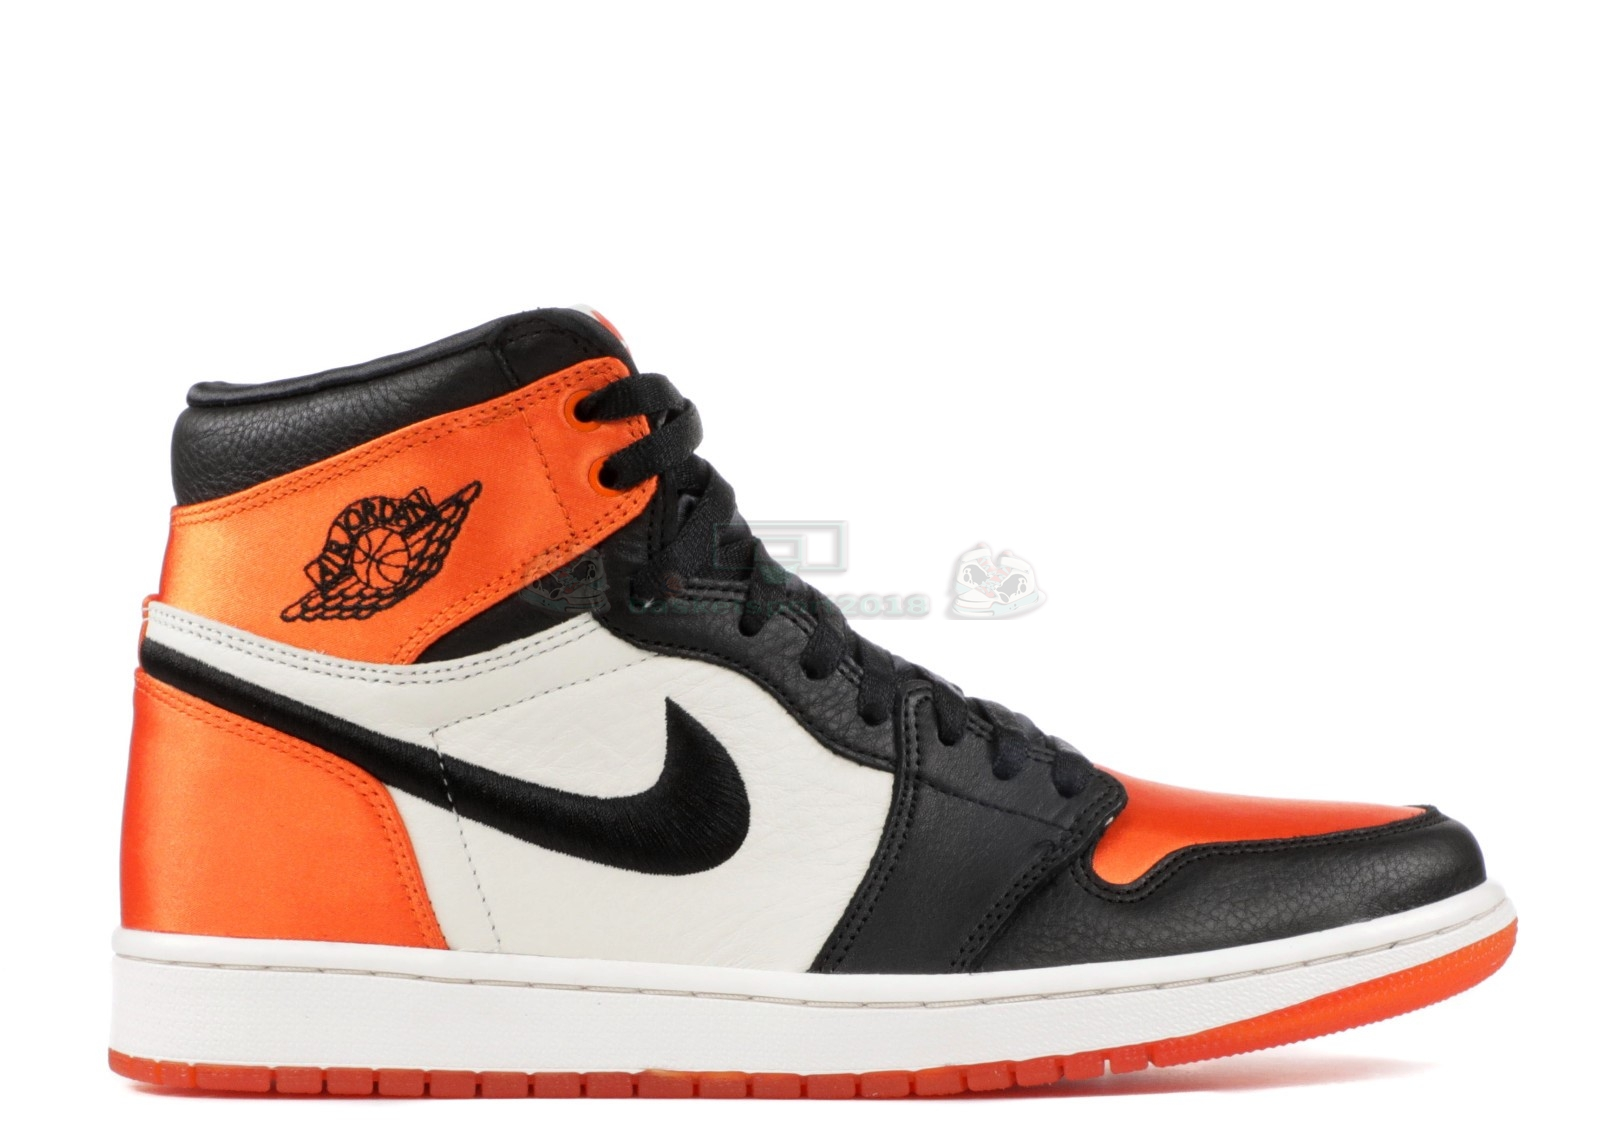 "Acheter Maintenant Pas Cher Femme - Air Jordan 1 Re High Og Sl ""Satin Shattered Backboard"" Noir Orange (av3725-010)"